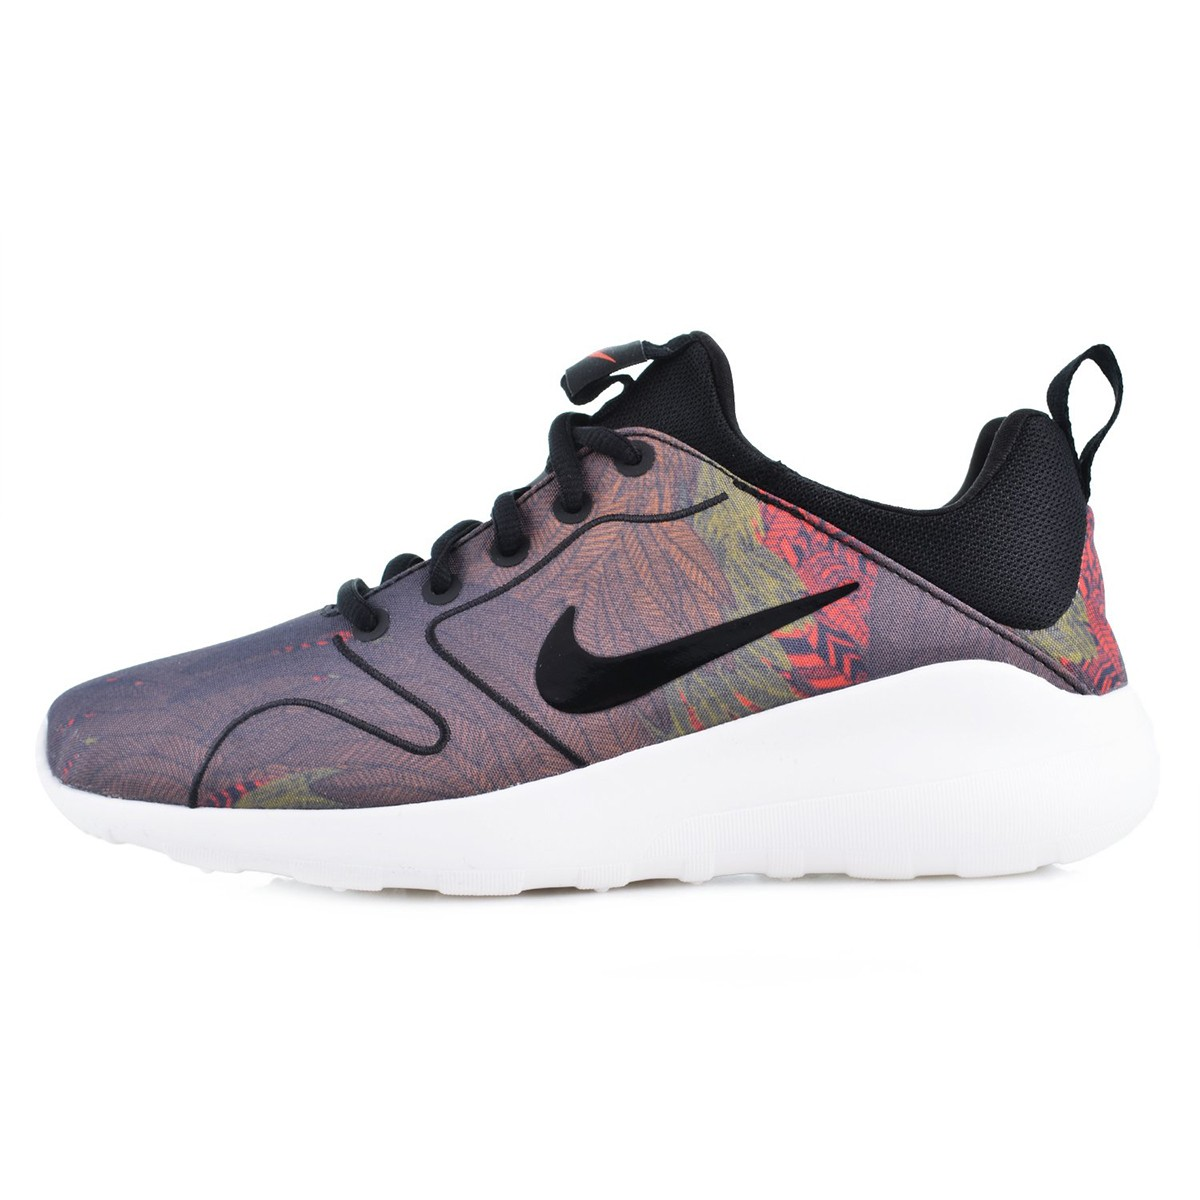 new style 82cac 345a9 good nike kaishi gs 277ba 1877c  coupon code for nike wmns nike kaishi 2.0  print 833667 003 d2420 2c73c